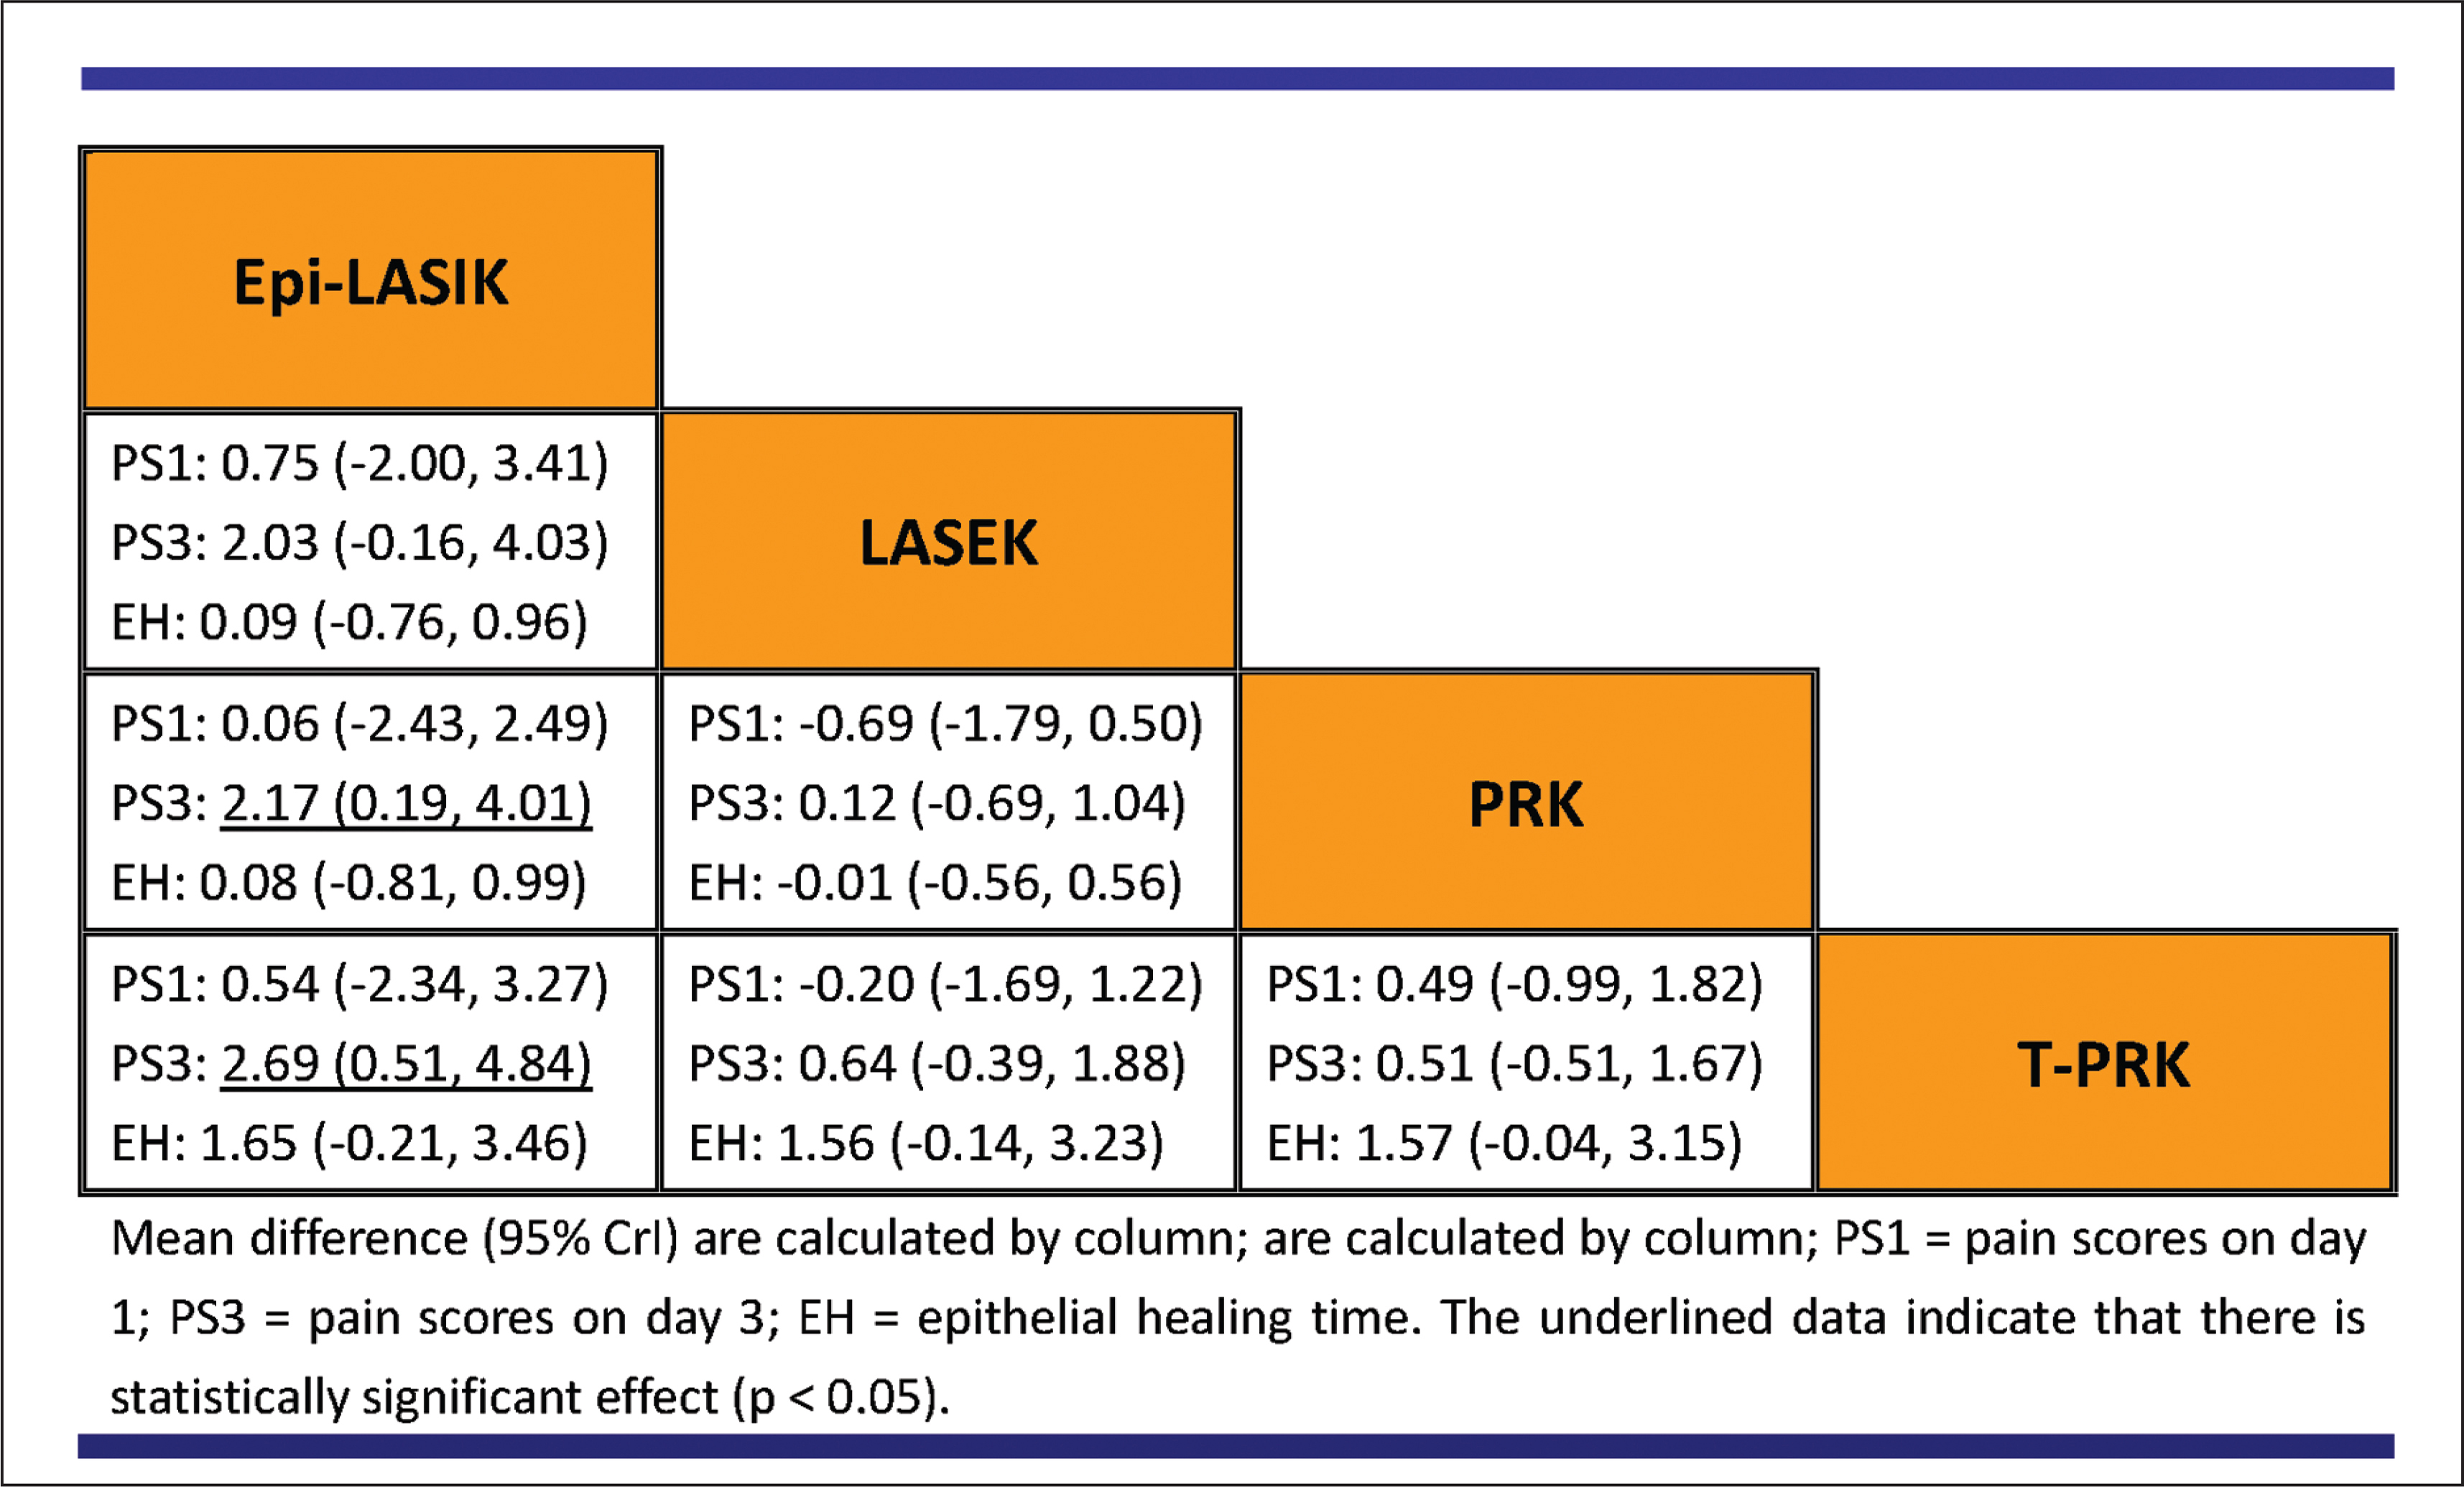 Summary comparison for postoperative pain scores and epithelial healing time of all treatments derived from the network meta-analysis. epi-LASIK = epithelial laser in situ keratomileusis; LASEK = laser epithelial keratectomy; PRK = photorefractive keratectomy; T-PRK = transepithelial photorefractive keratectomy